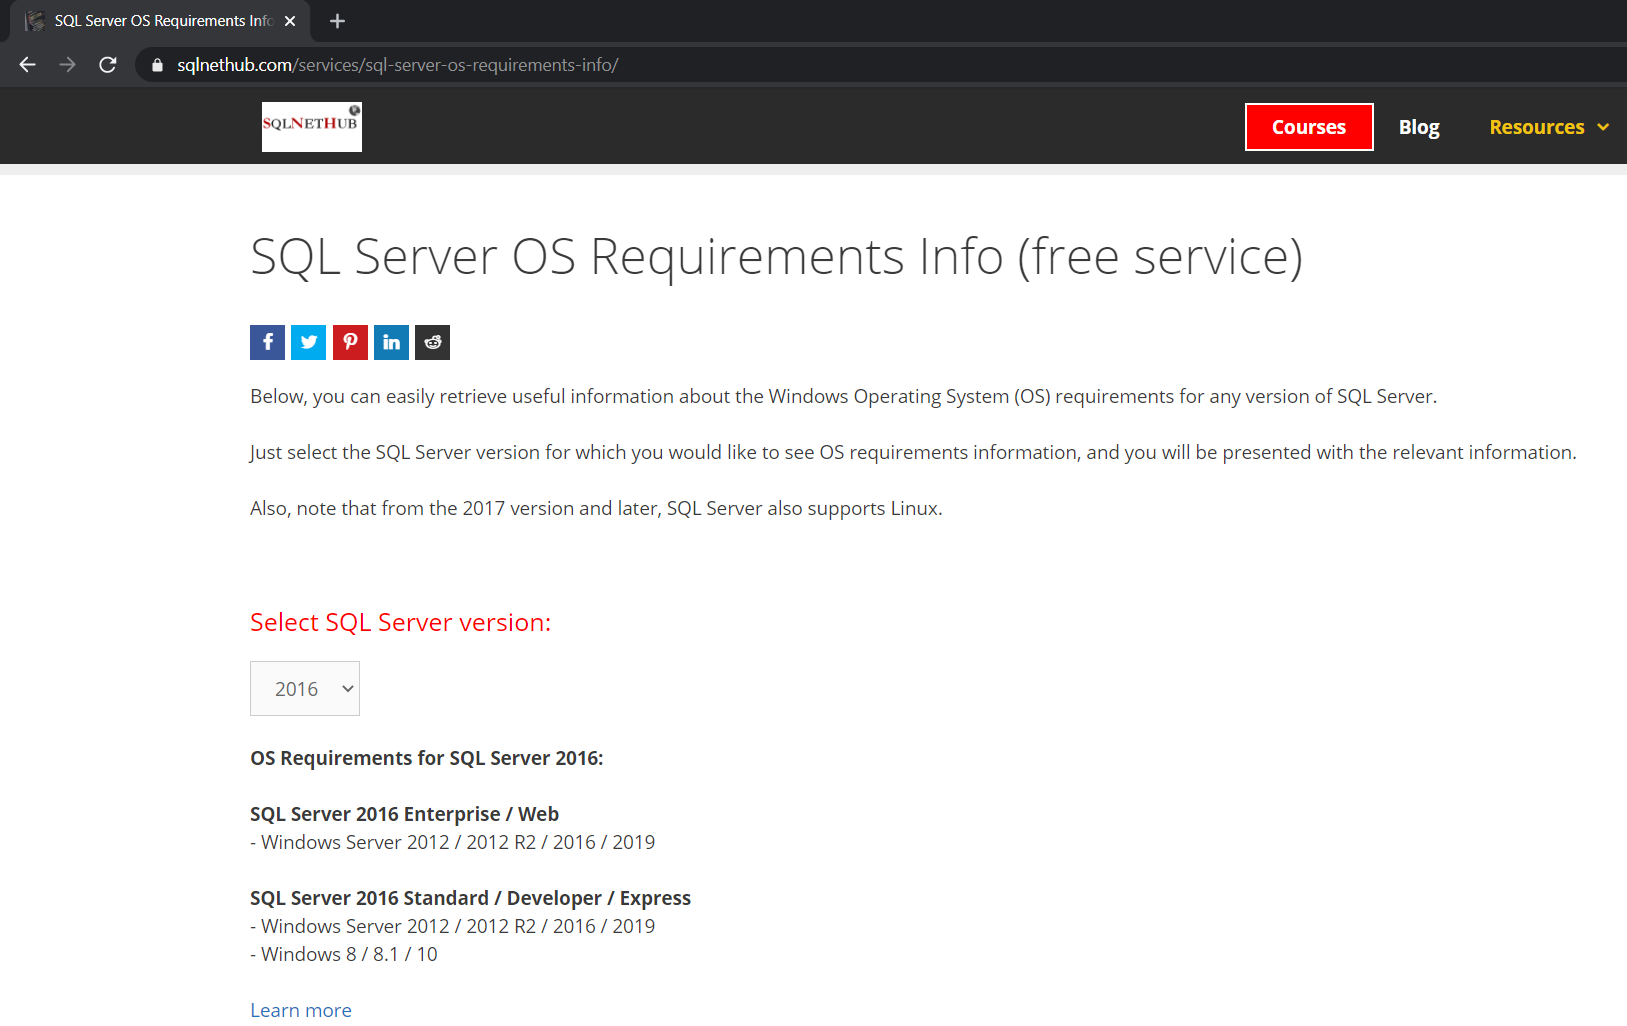 SQL Server OS Requirements Info - Free Service on SQLNetHub